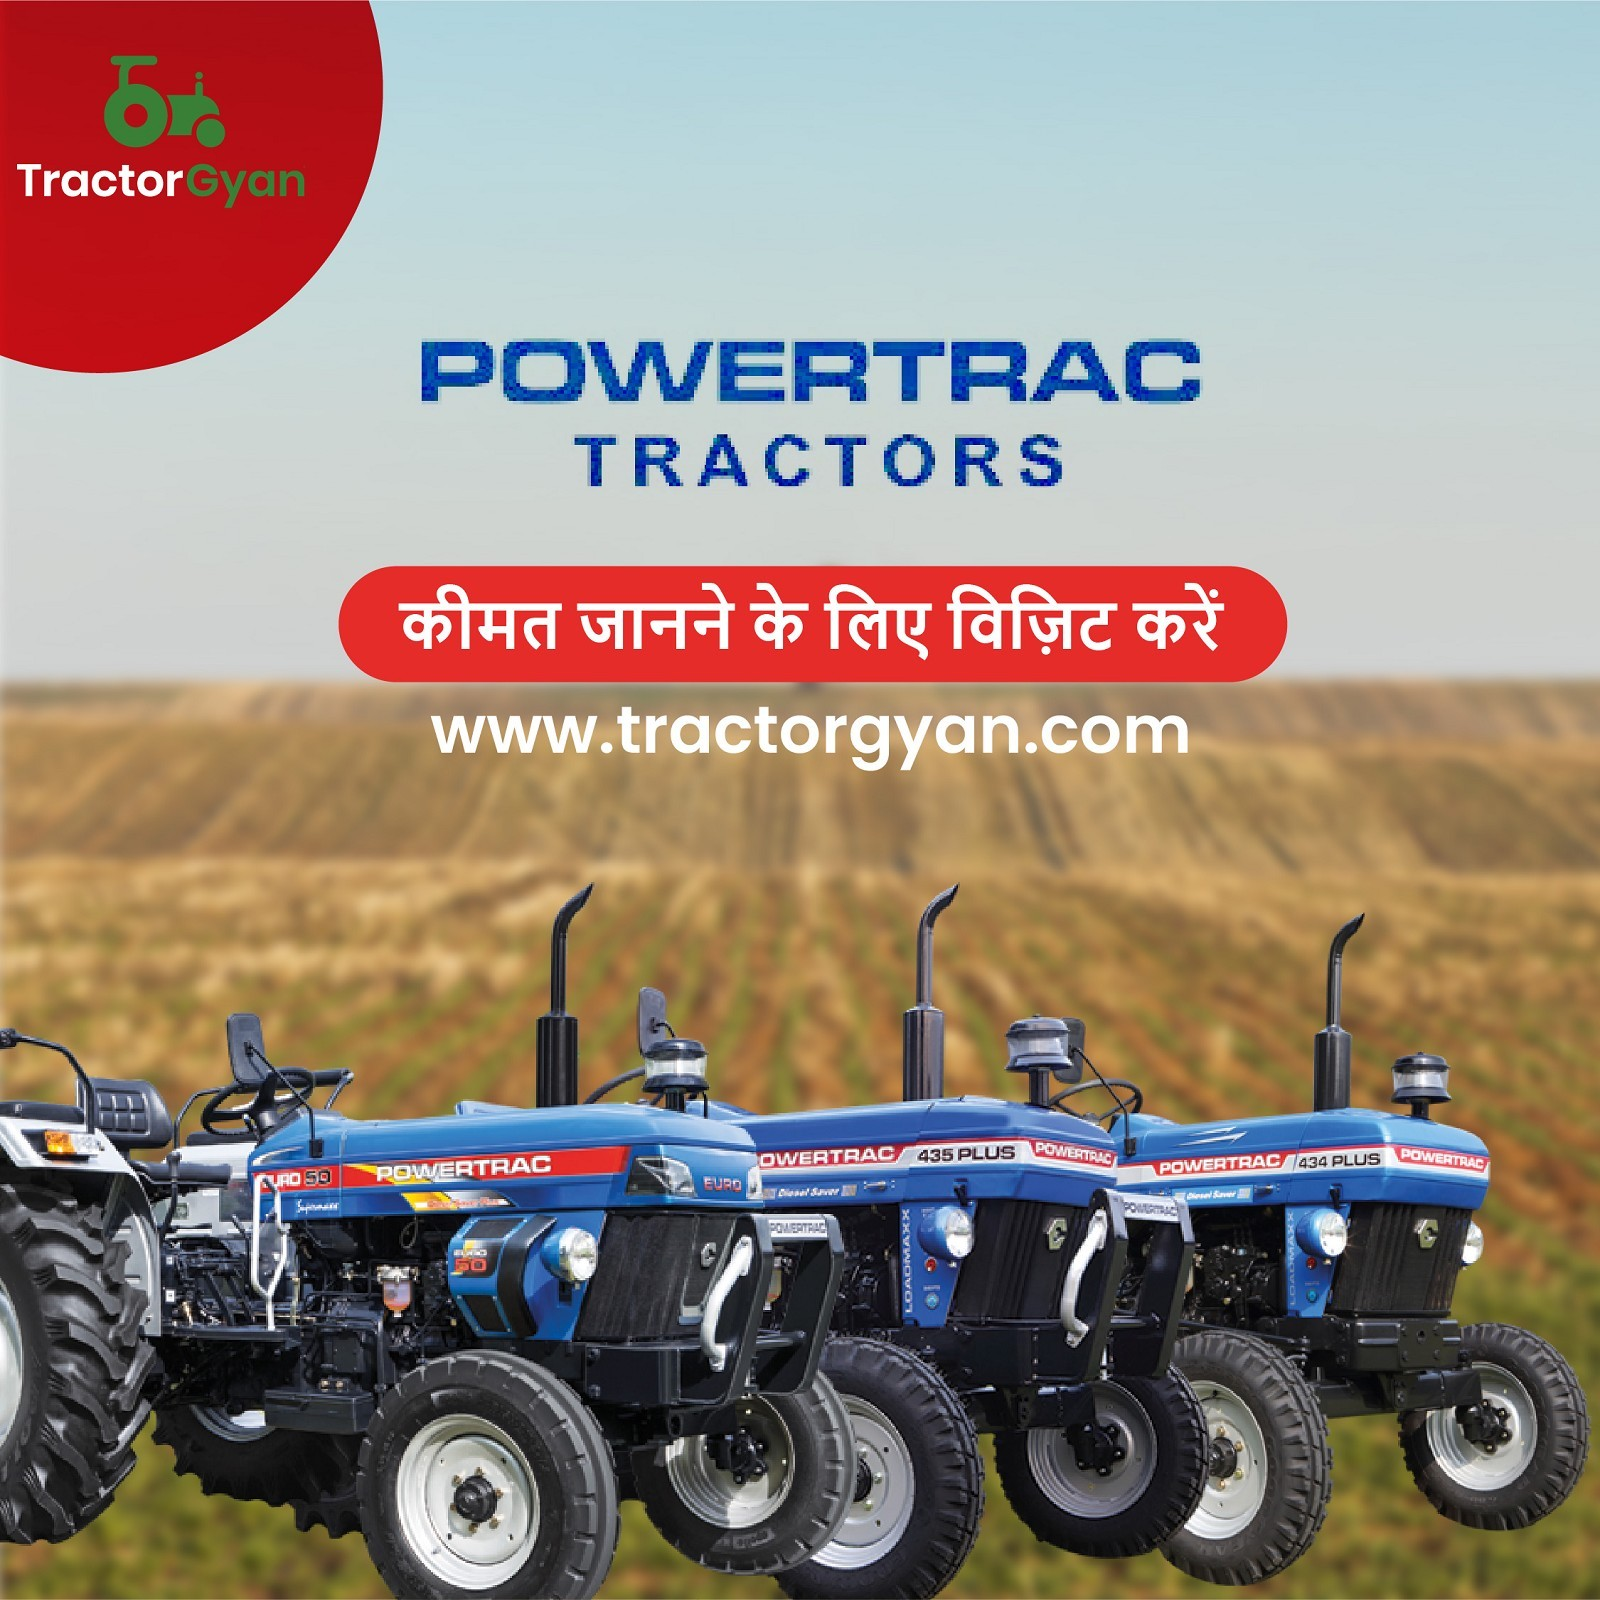 Powertrac Tractor|Powertrac Tractor|PriceMini Tractor, features in India-TractorGyan